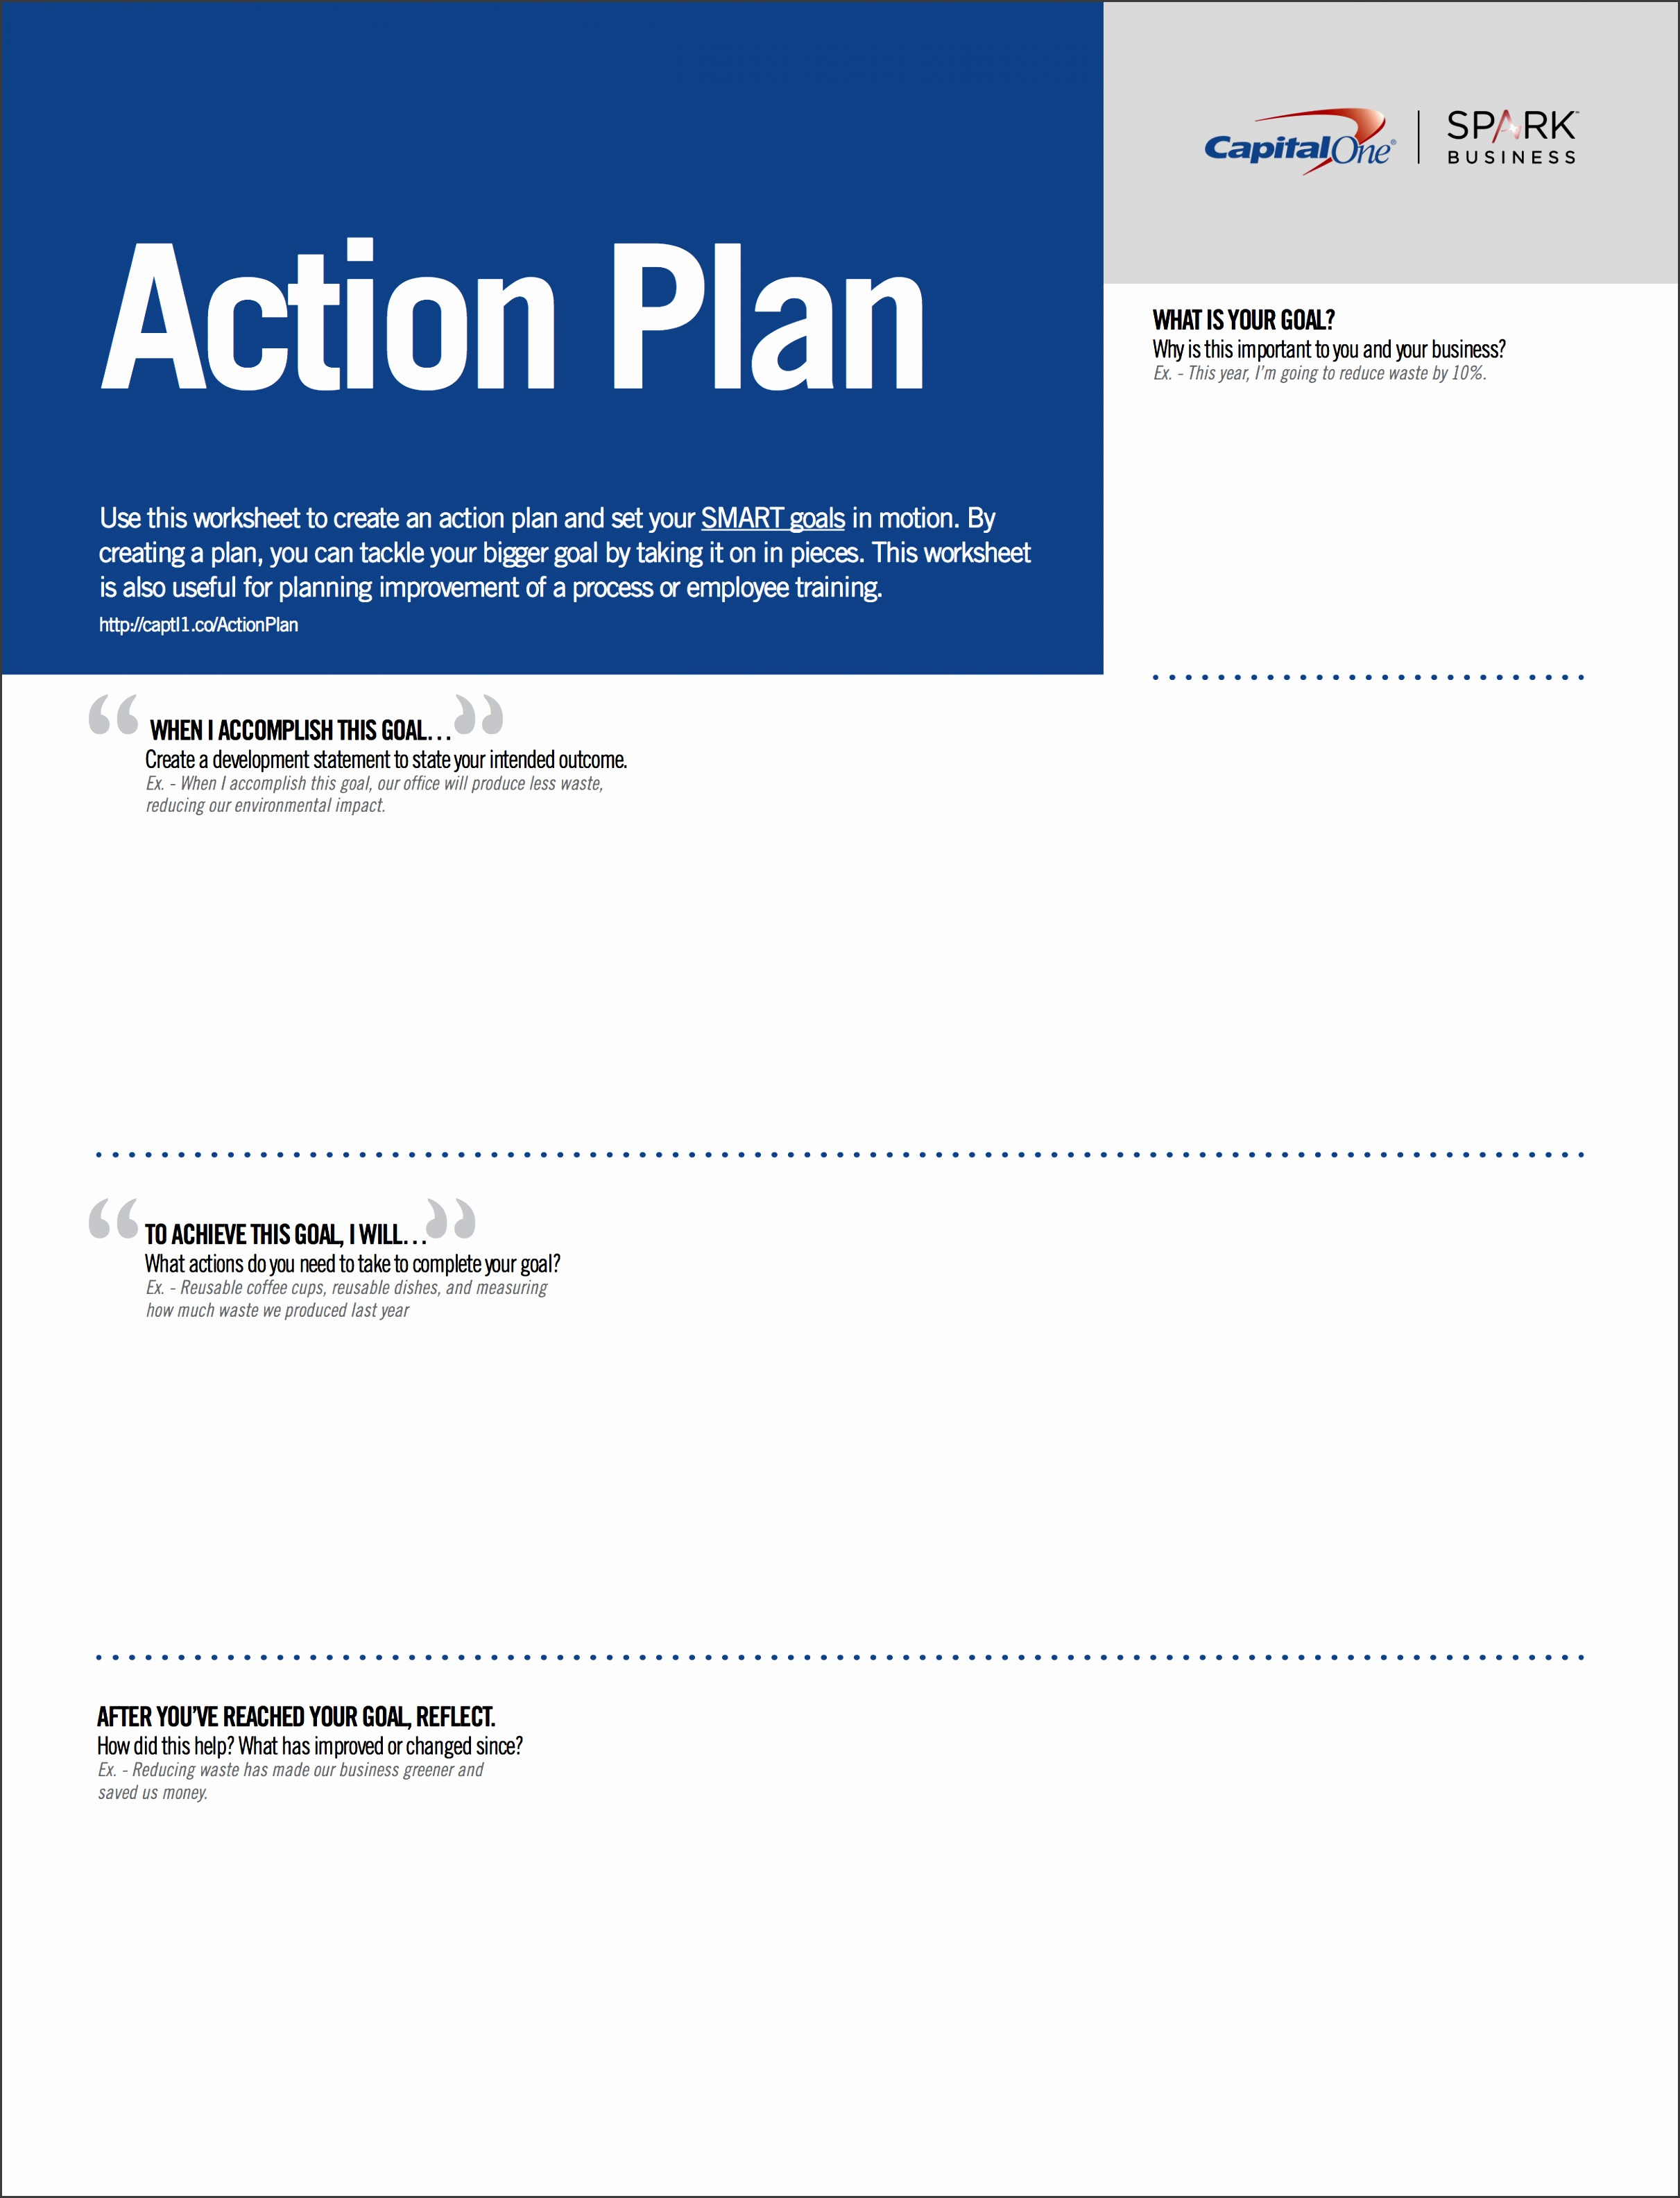 Download the worksheet below and started on your action plan